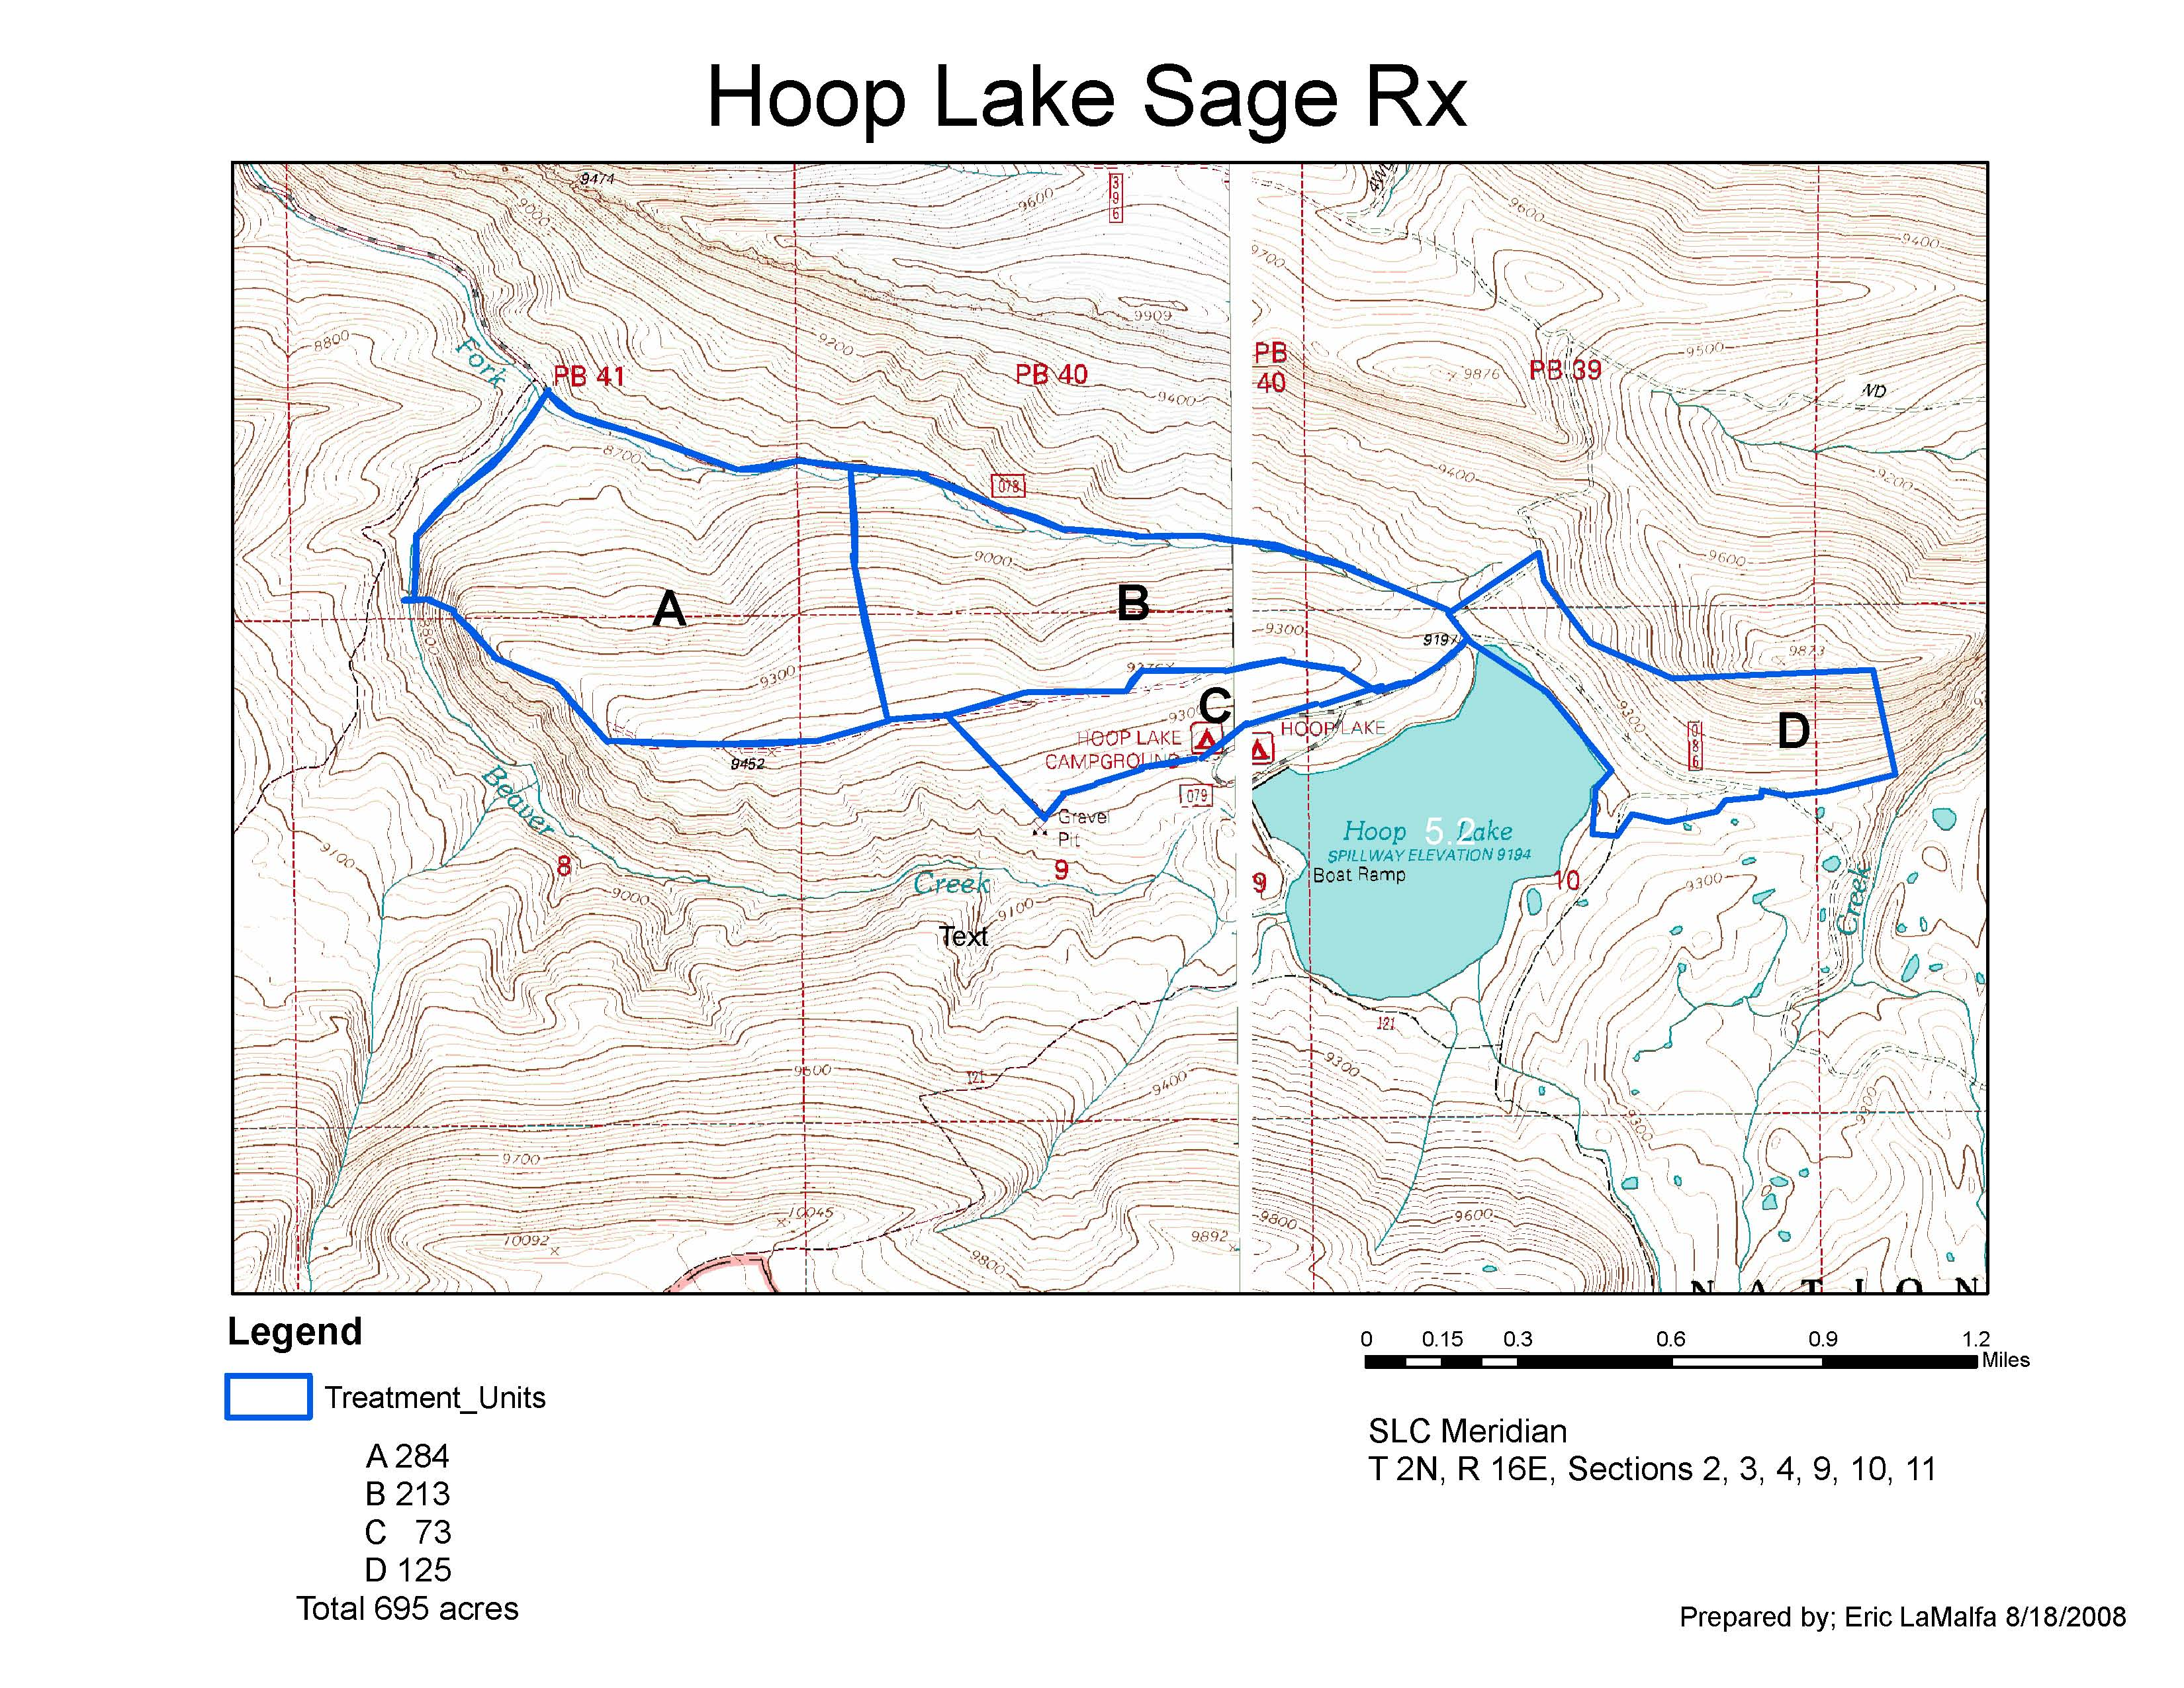 Map Showing the Hoop Lake Prescribed Fire Area on the North Slope of the Uintas